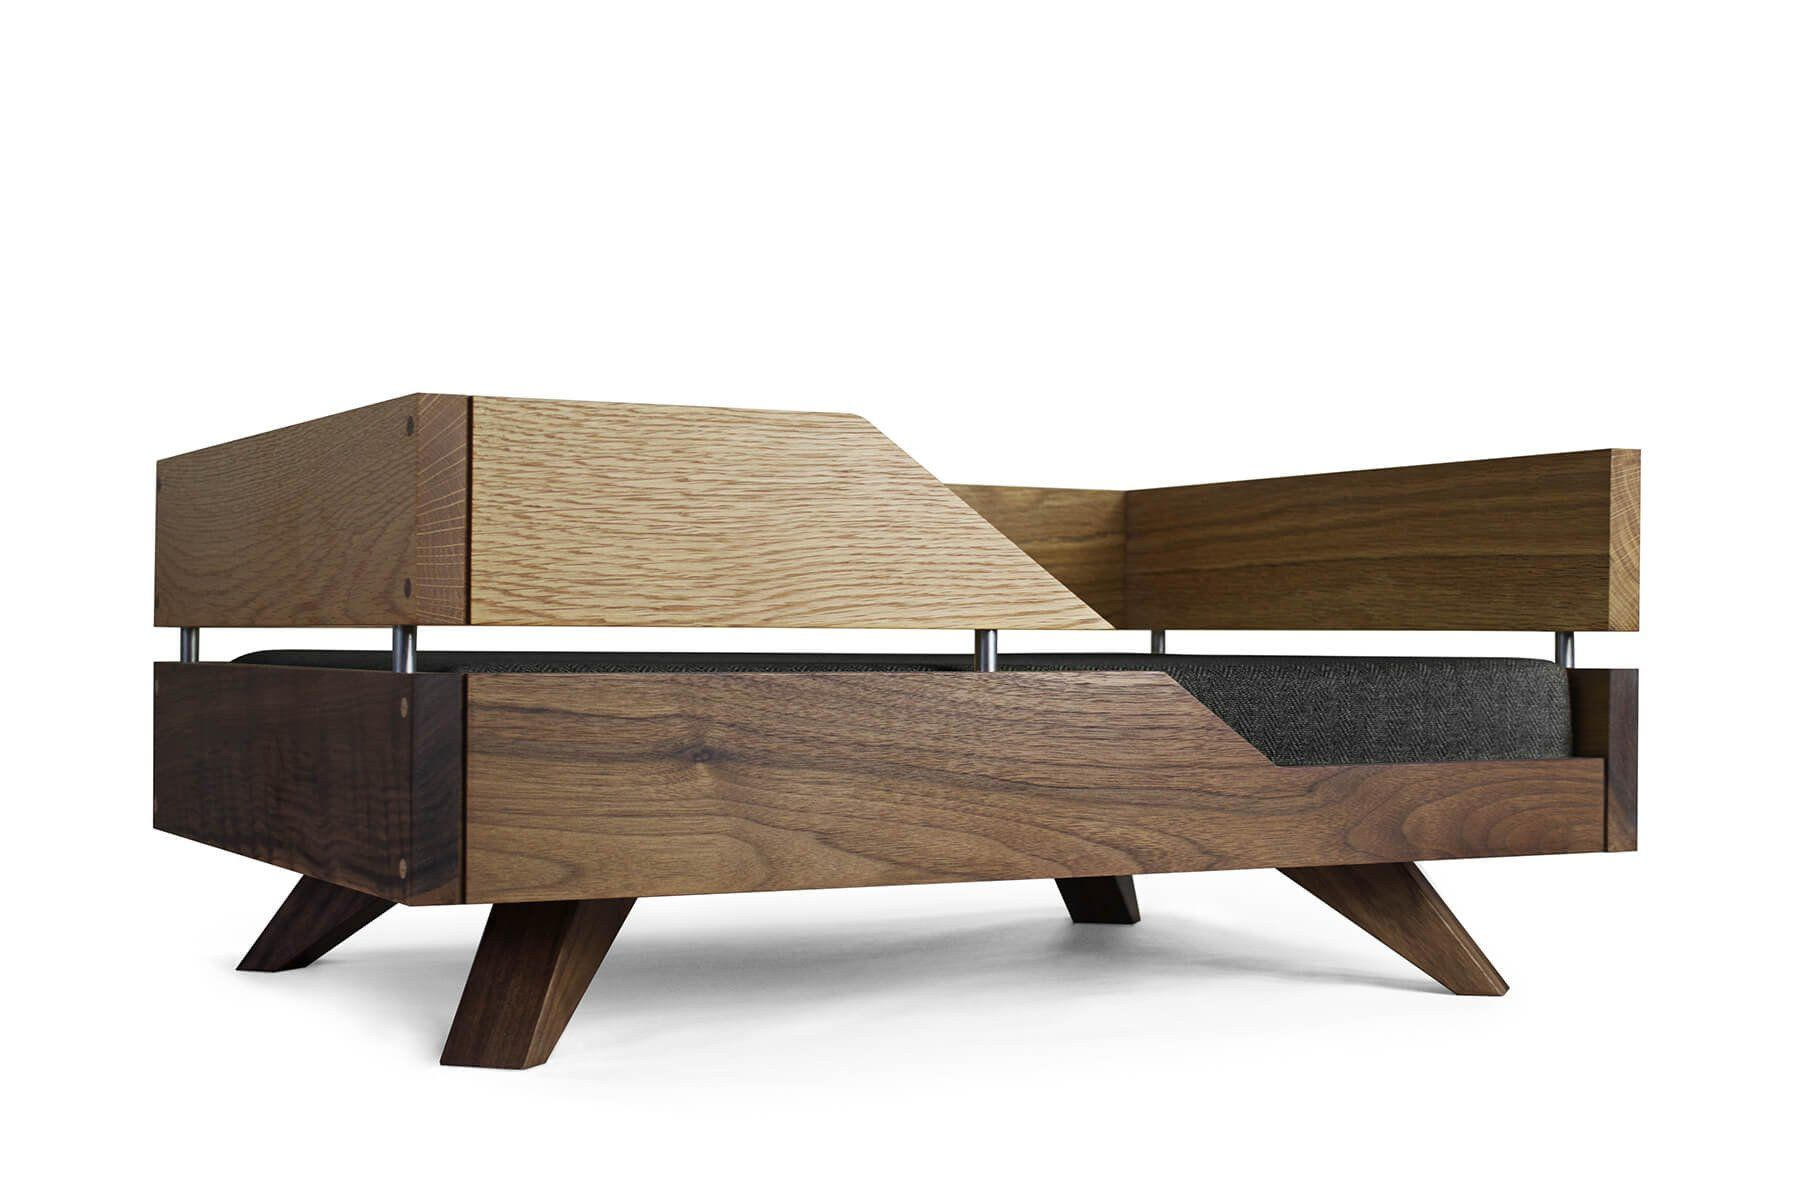 Contemporary wooden dog beds handmade from solid oak